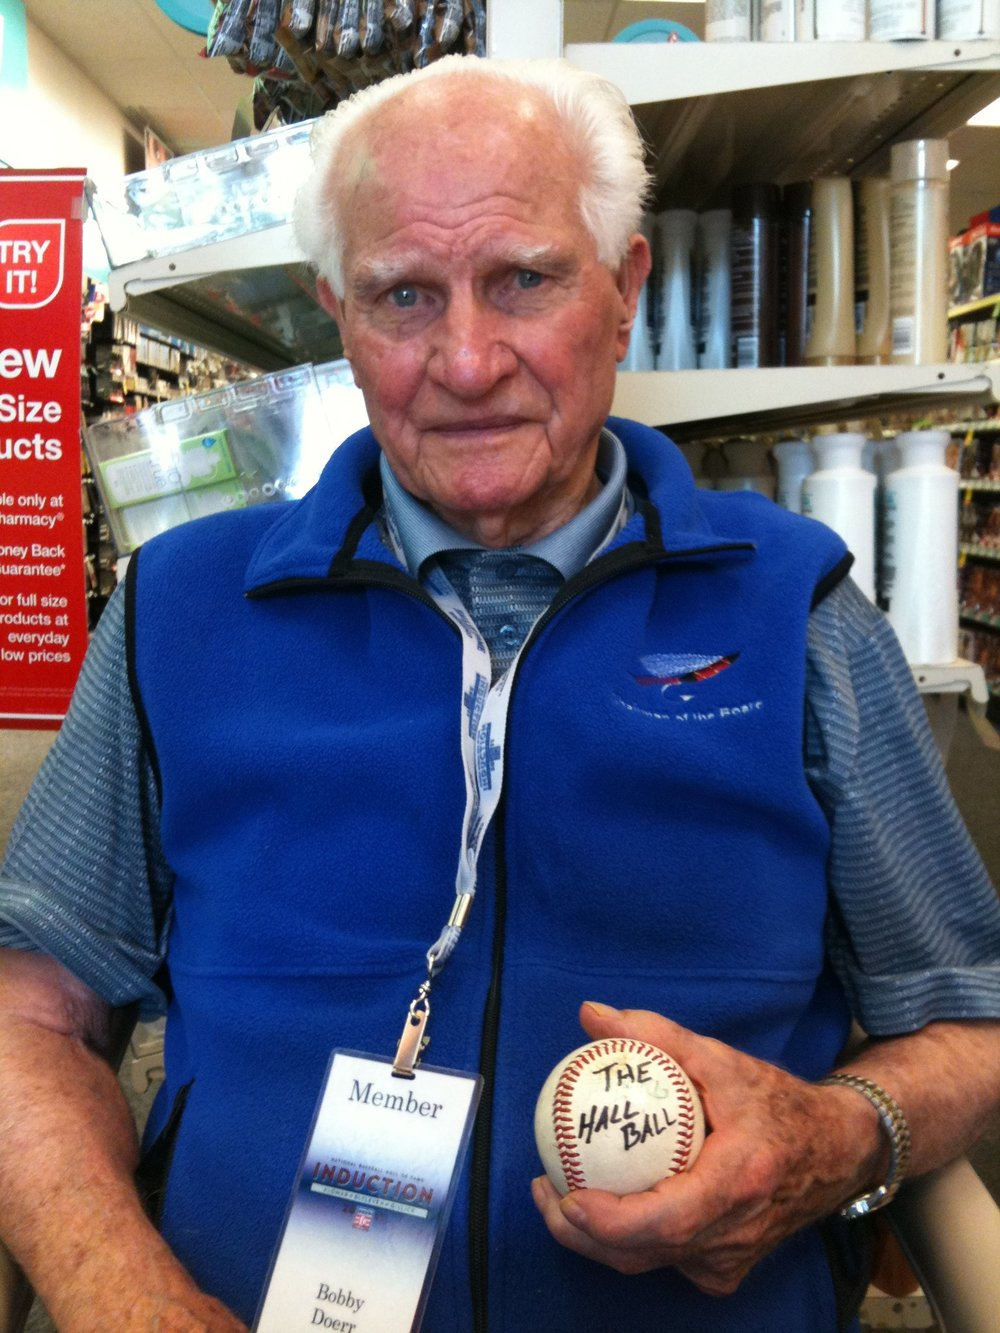 Former Blue Jays hitting coaach Bobby Doerr passed away this week. The Hall of Famer was regarded as Ted Williams' best friend.Photo: Ralph Carhart (thehallball.com).